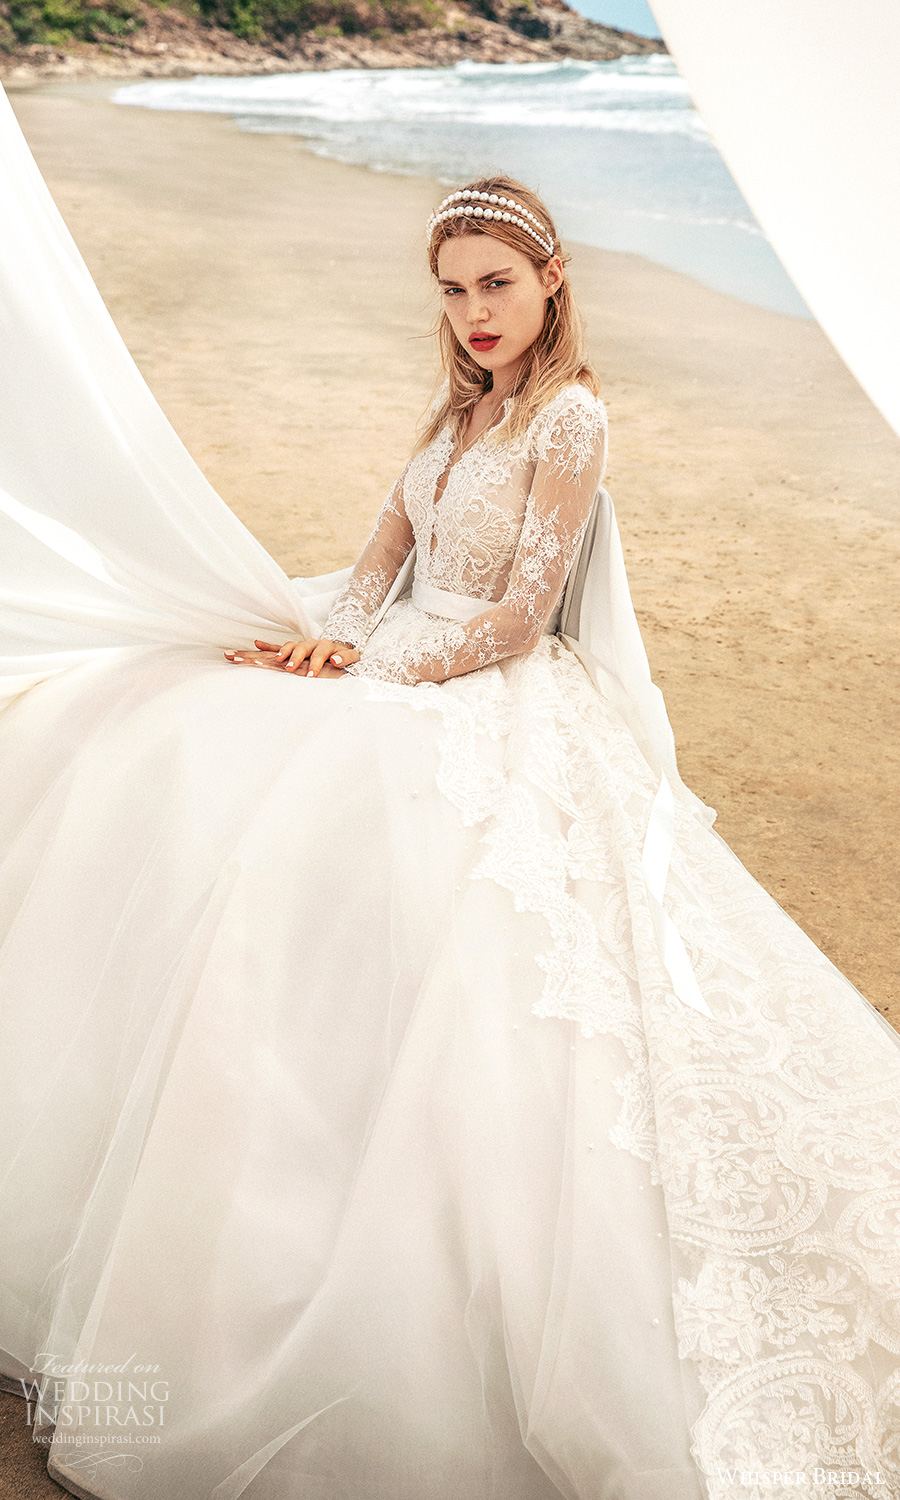 whisper bridal spring 2021 bridal illusion long sleeves plunging v neckline lace bodice a line ball gown wedding dress chapel train (12) mv